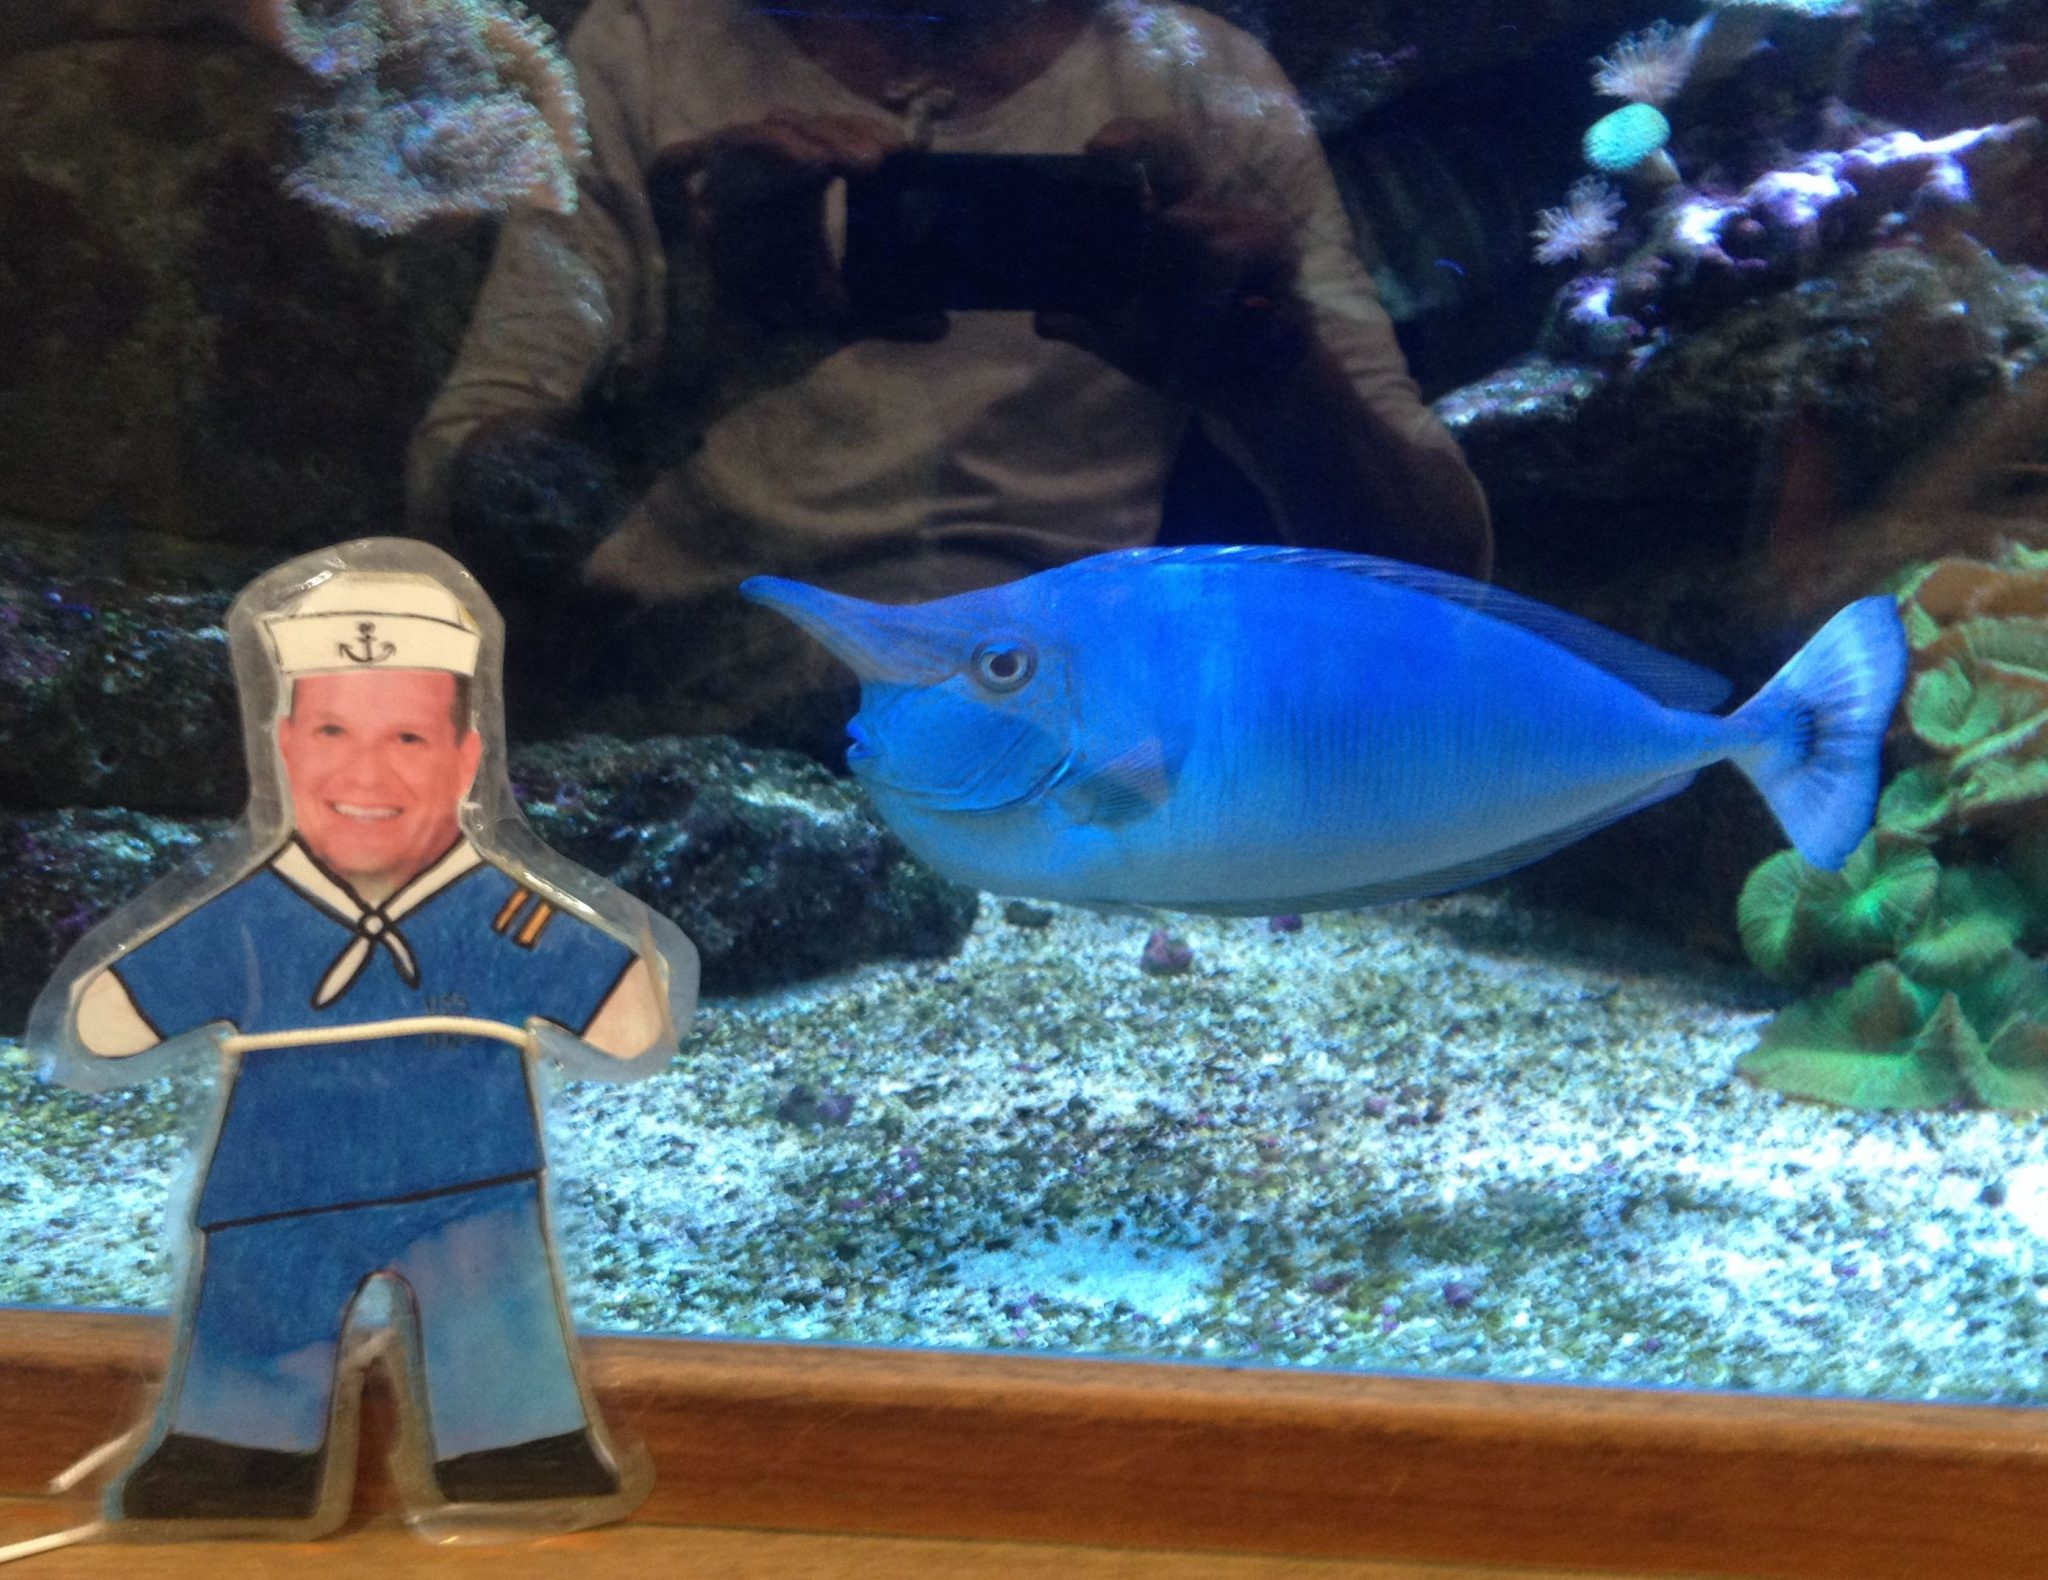 36. Flat Mr. Davis and Blue fish with long nose